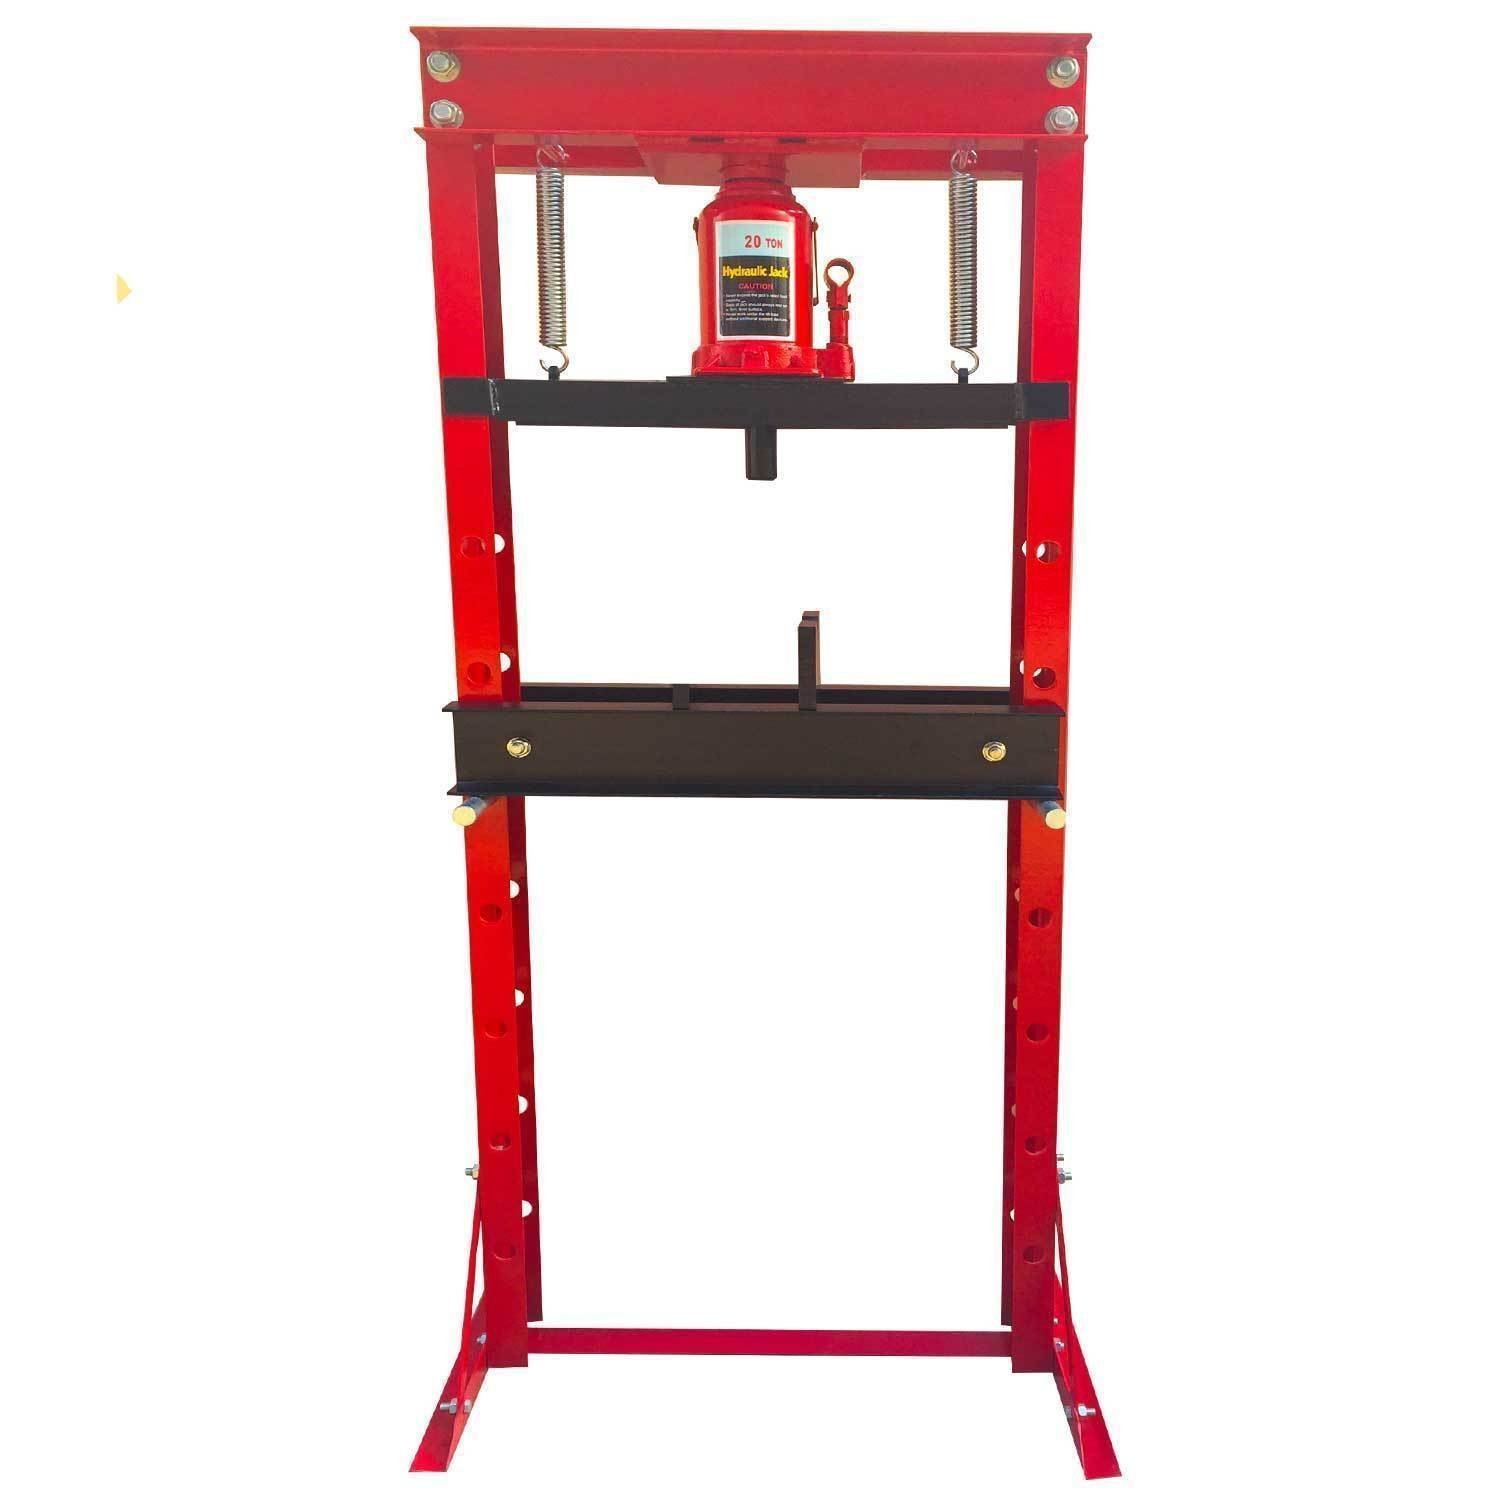 20 Ton Hydraulic Shop Press Floor Press H Frame Load capacity: 20 ton Overall height: 61''